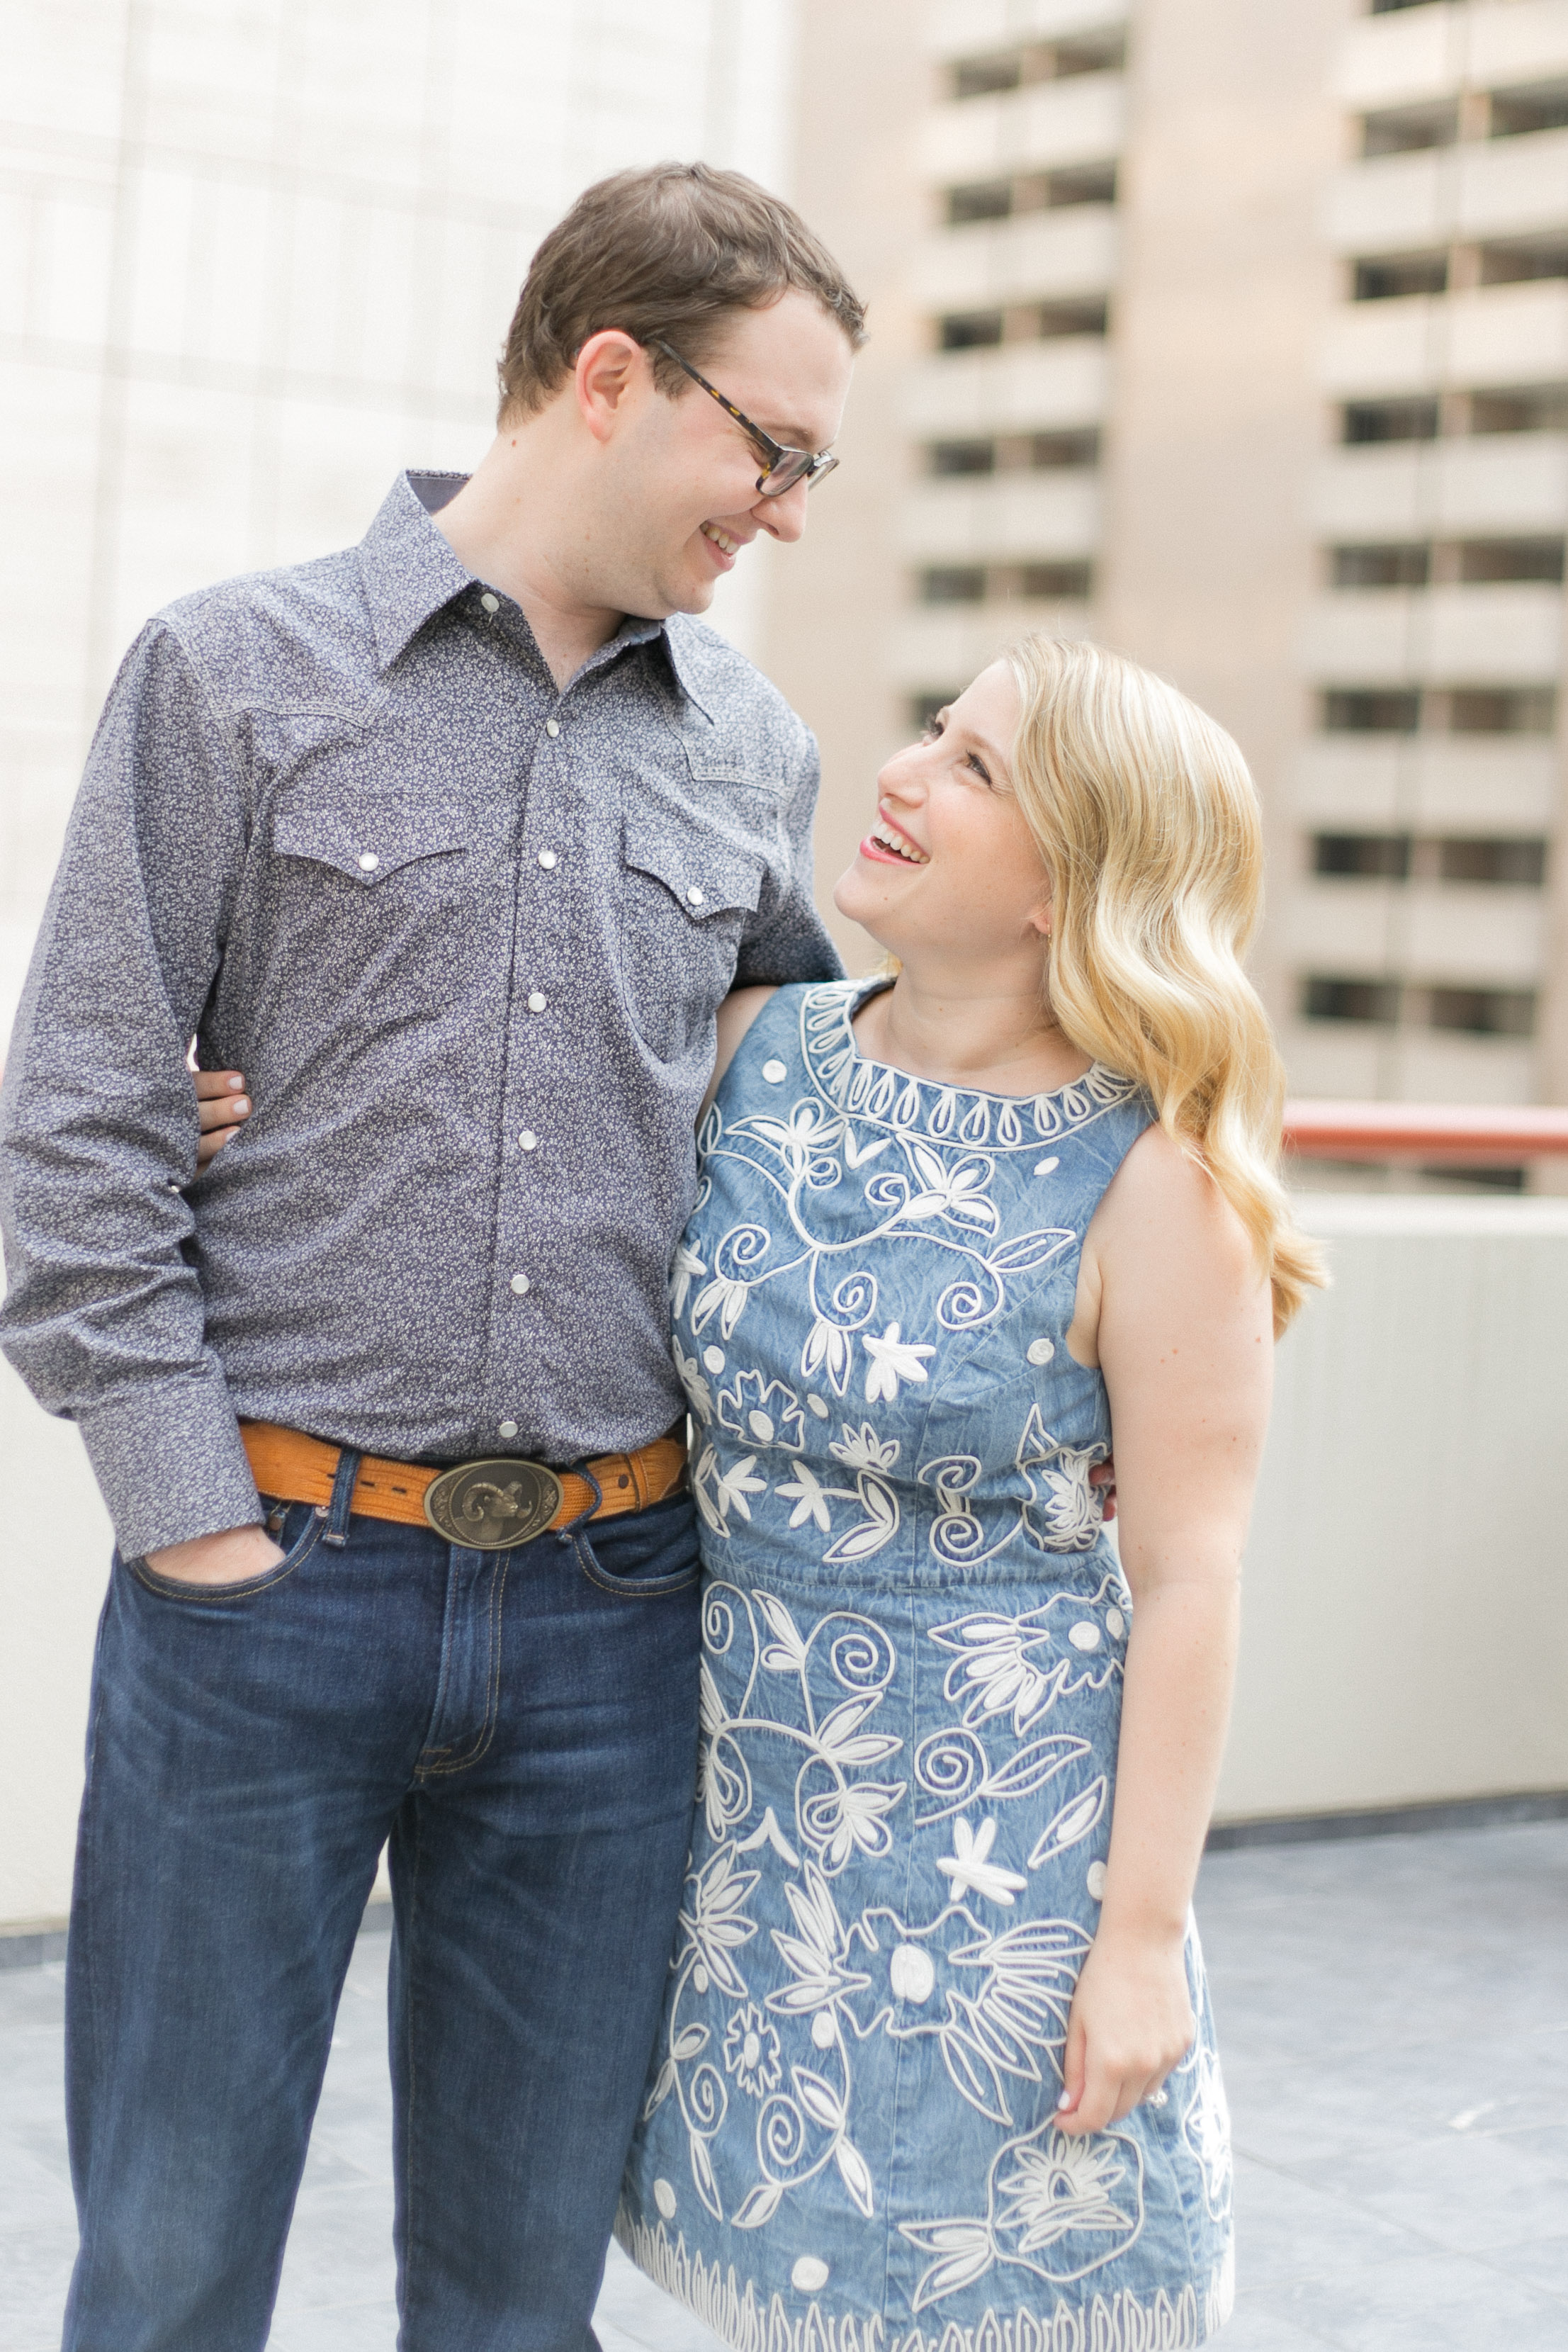 Engagement and Rehearsal Dinner Photos Dallas | Chelsea Macor Photography Bellevue WA-3.jpg